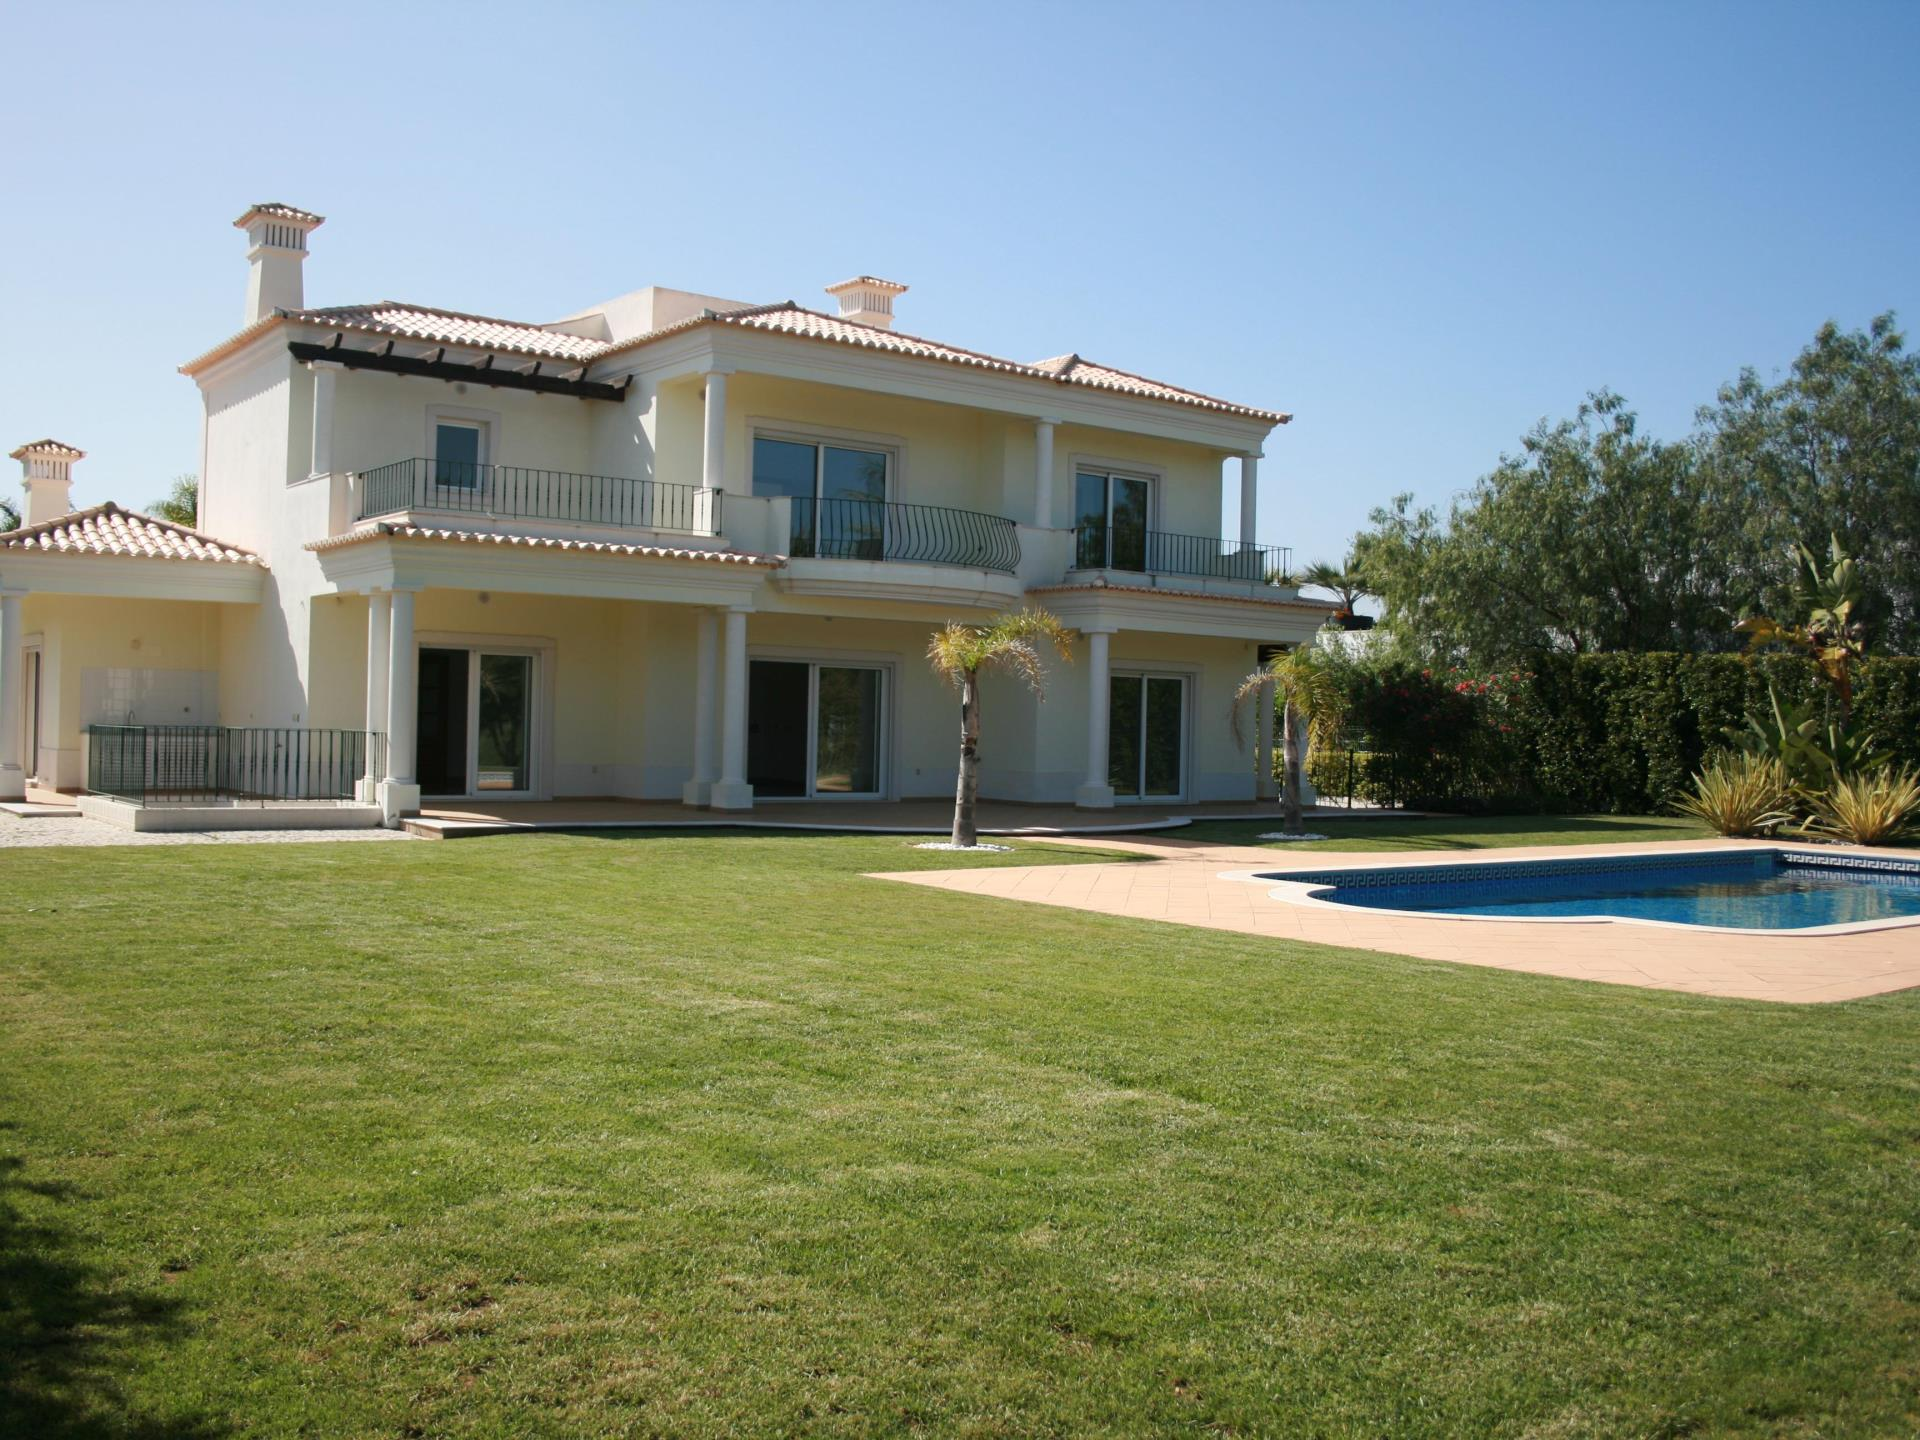 Tek Ailelik Ev için Satış at House, 5 bedrooms, for Sale Loule, Algarve Portekiz